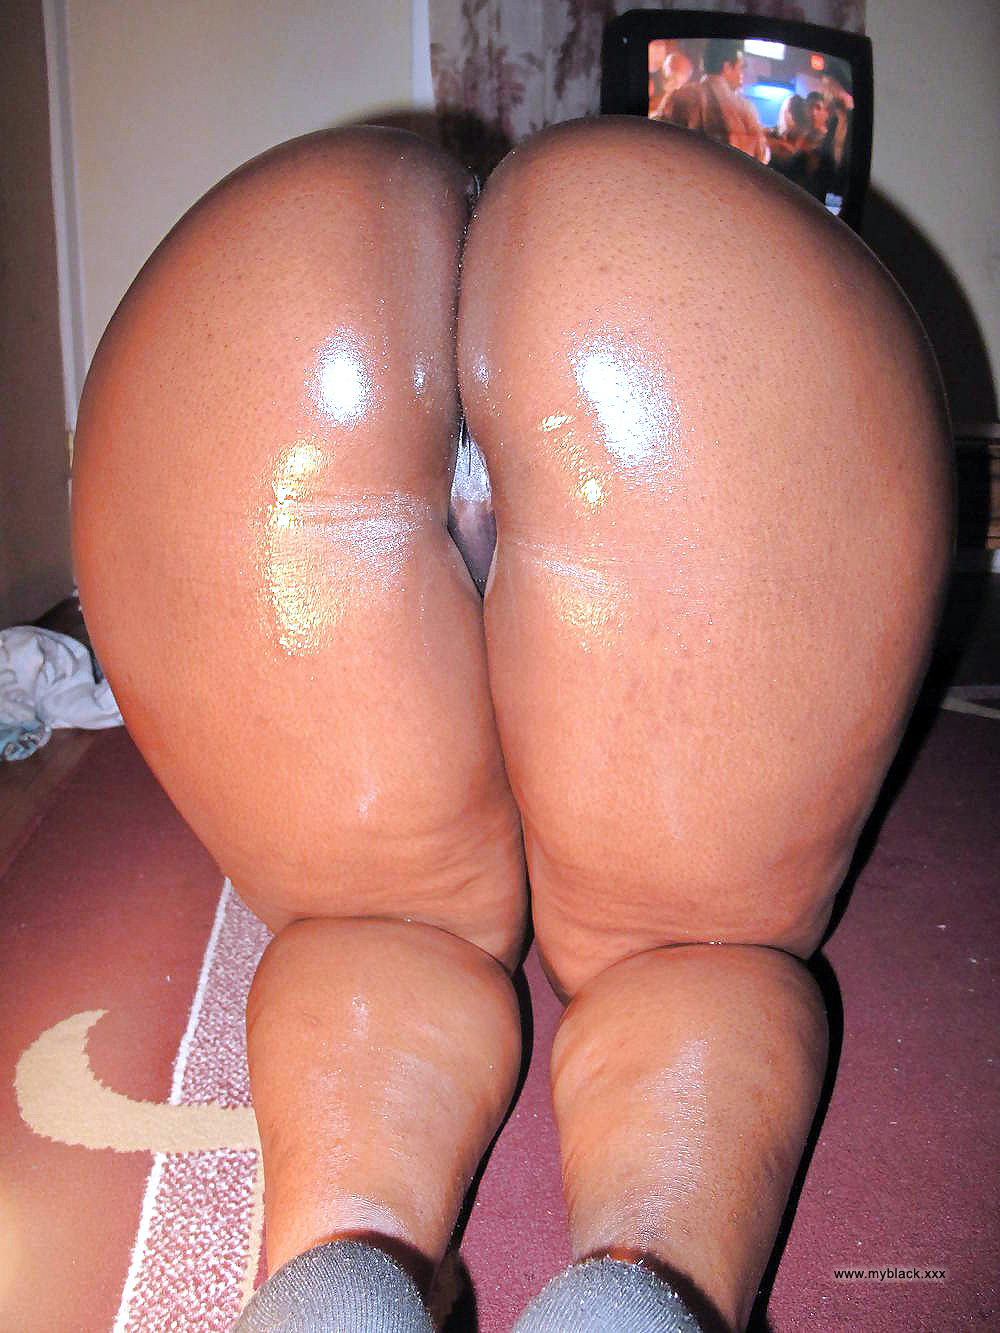 Pictures of big black asses